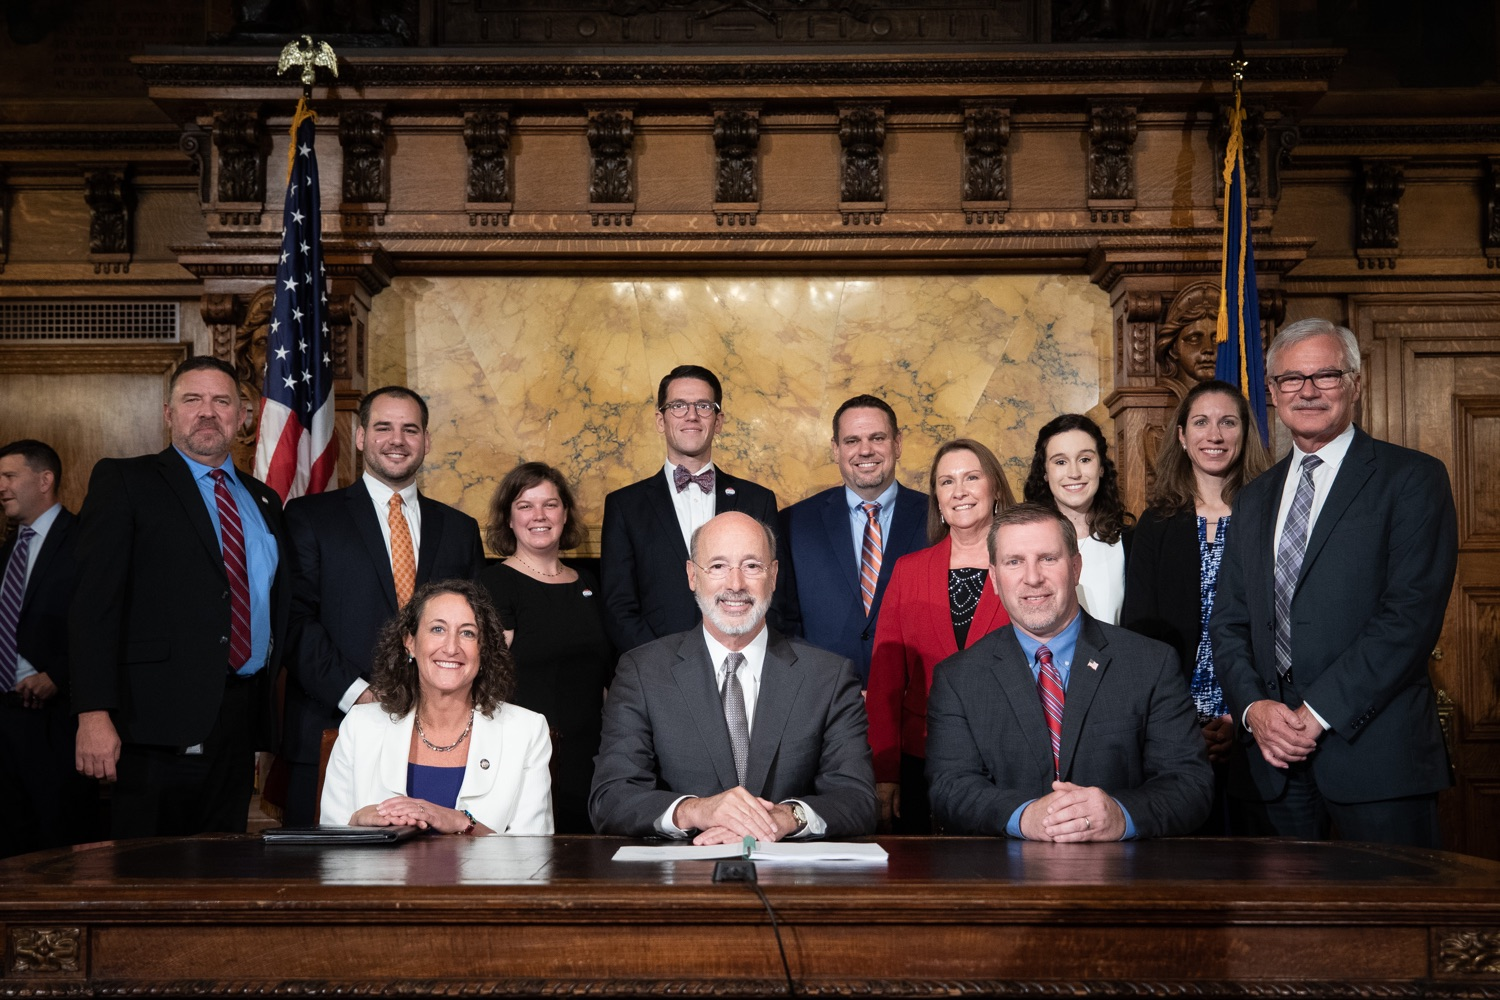 "<a href=""https://filesource.wostreaming.net/commonwealthofpa/photo/17554_gov_voter_reform_bill_dz_024.jpg"" target=""_blank"">⇣ Download Photo<br></a>Harrisburg, PA  Governor Tom Wolf posing with attendees after the bill signing. Governor Wolf made voting more convenient and secure by signing Act 77 of 2019, the most significant improvement to Pennsylvanias elections in more than 80 years. The bipartisan compromise legislation takes effect for the April 2020 primary election and makes Pennsylvania a national leader with voter-friendly election reforms."